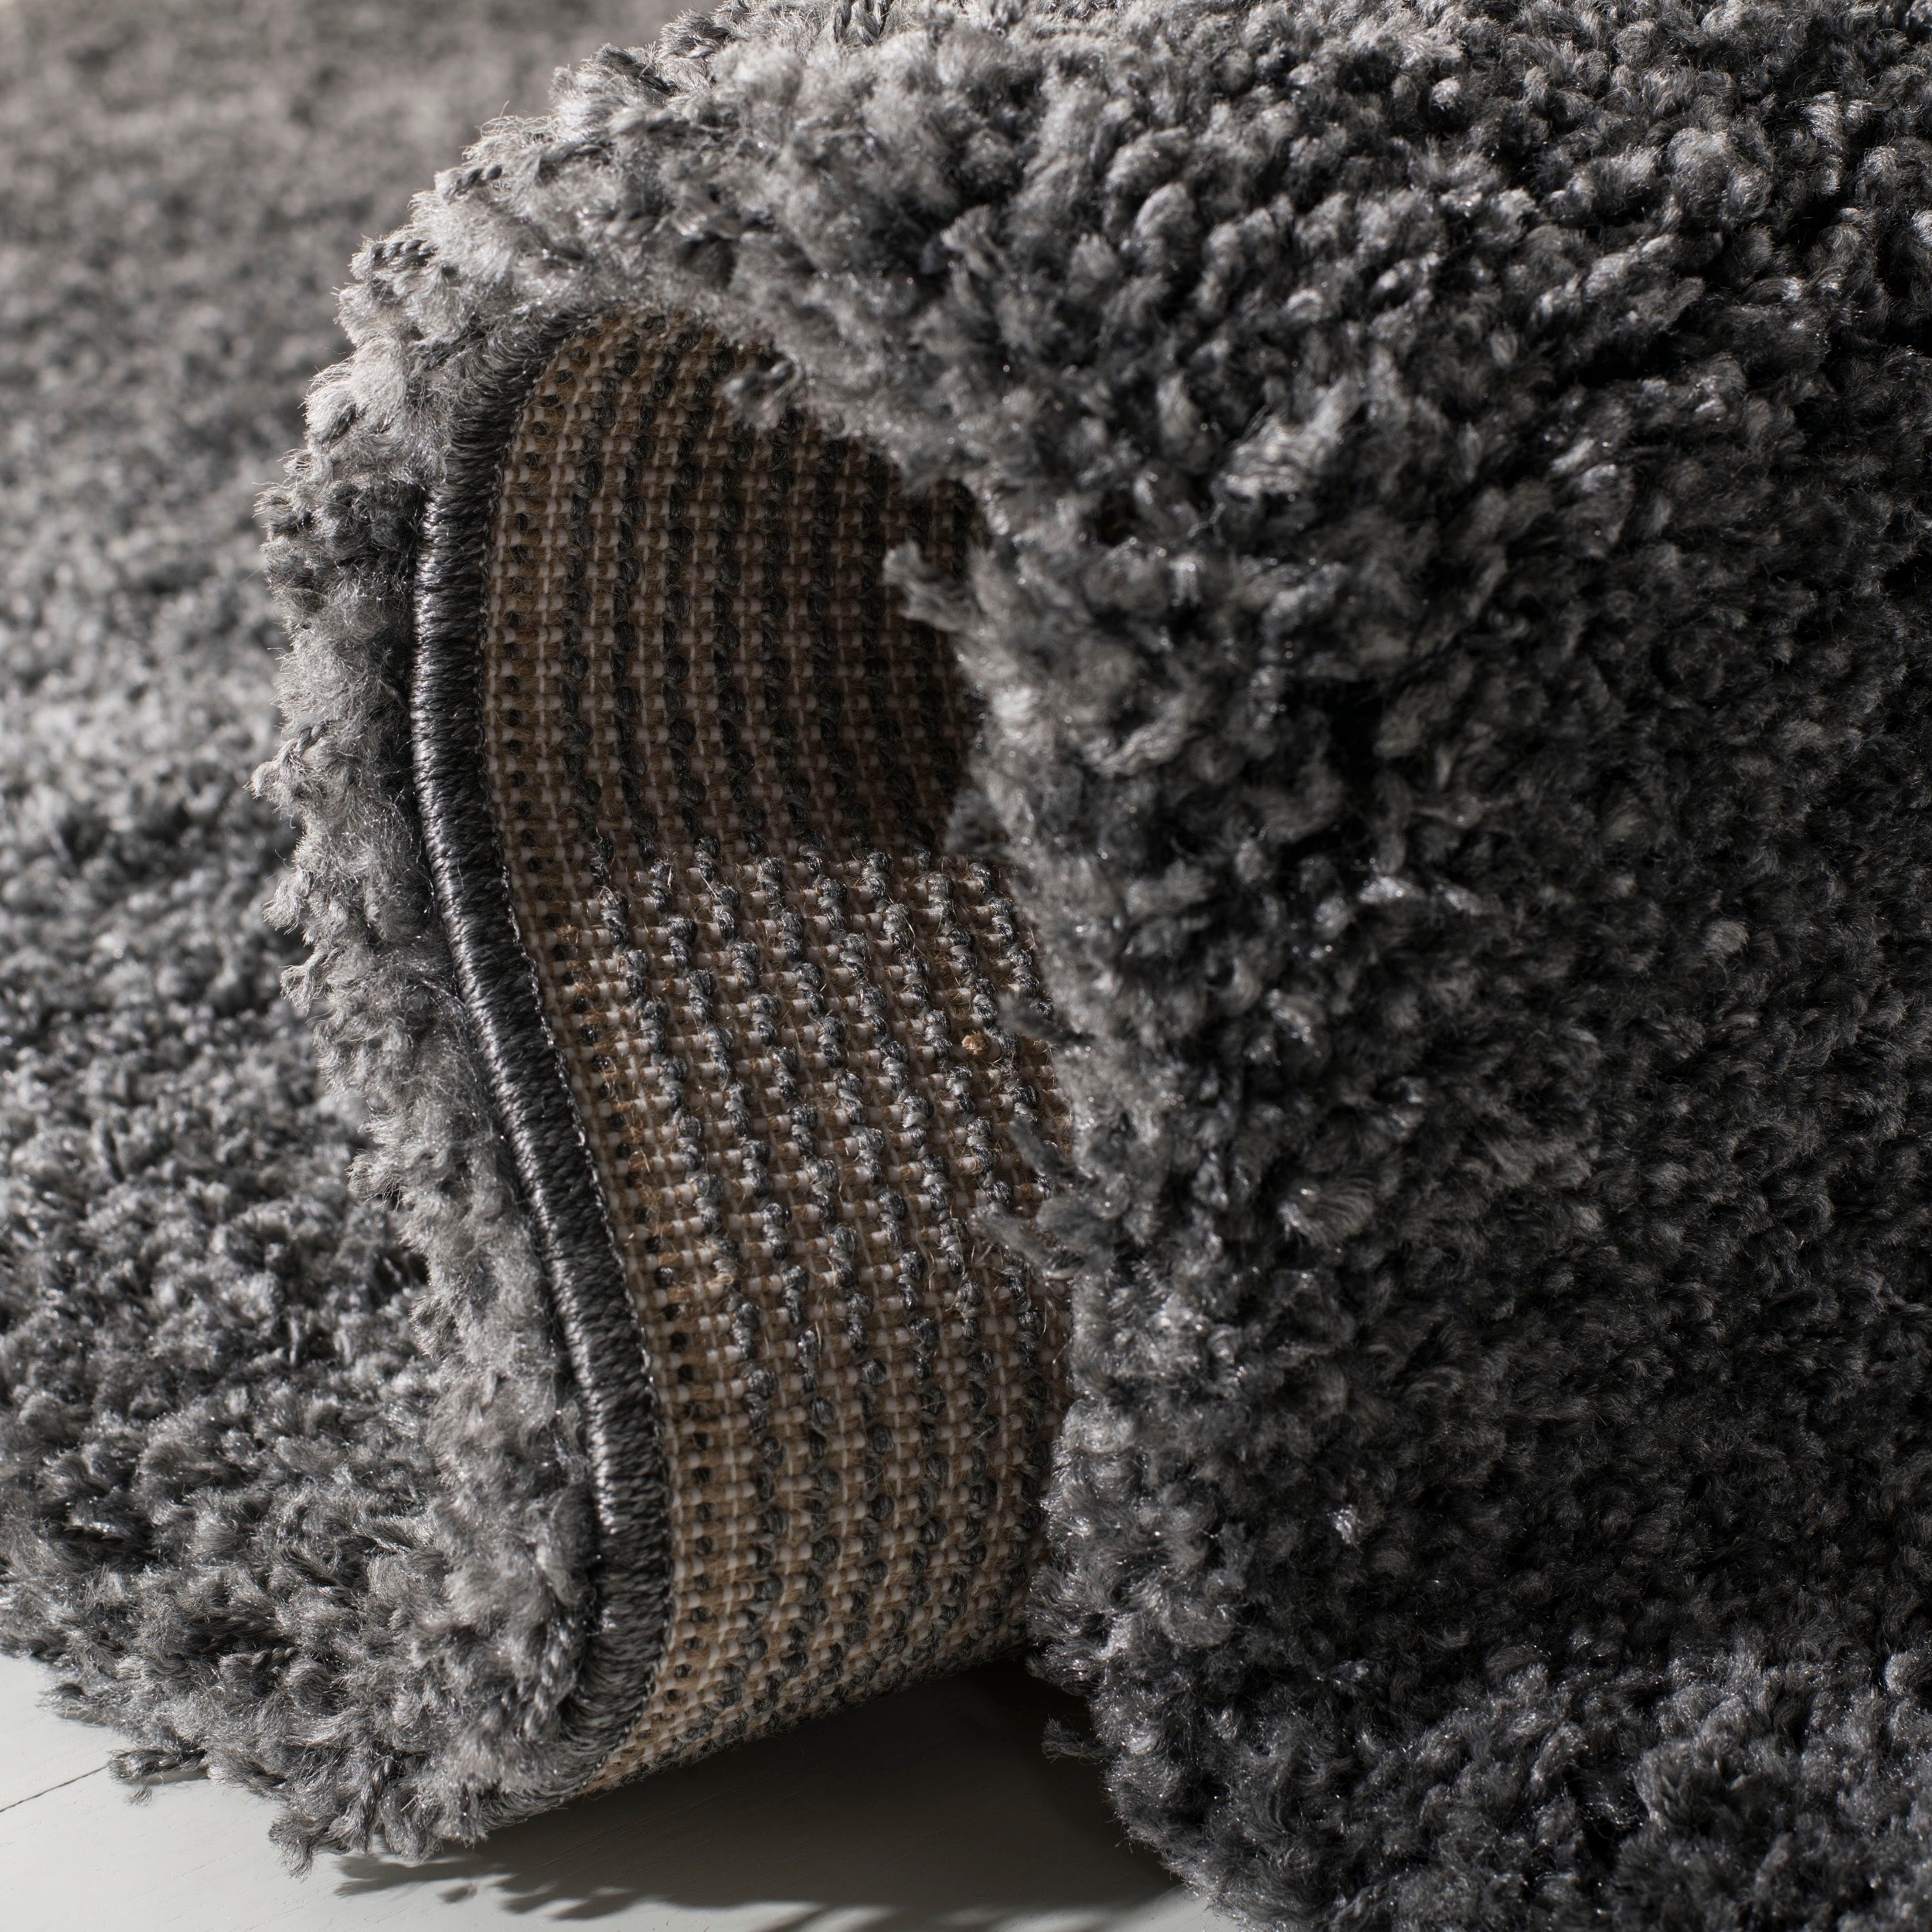 fc7a17bc77f Shop Safavieh Cozy Plush Dark Grey Charcoal Shag Rug - On Sale - Free  Shipping Today - Overstock - 20602811